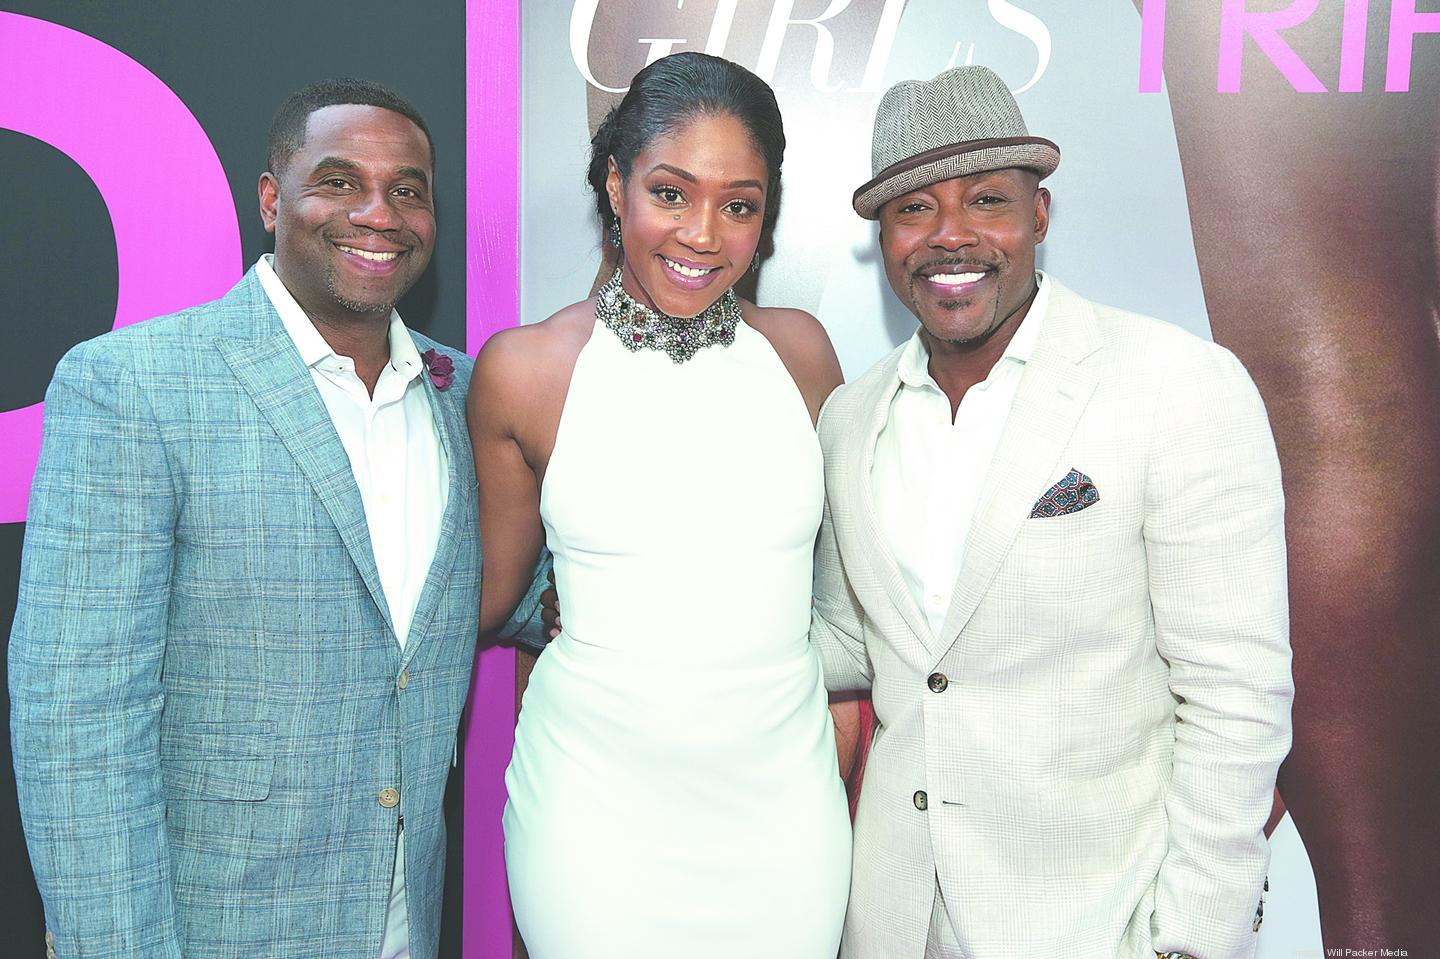 News post image: Atlanta hit maker: Relevance is more important than box office, ratings